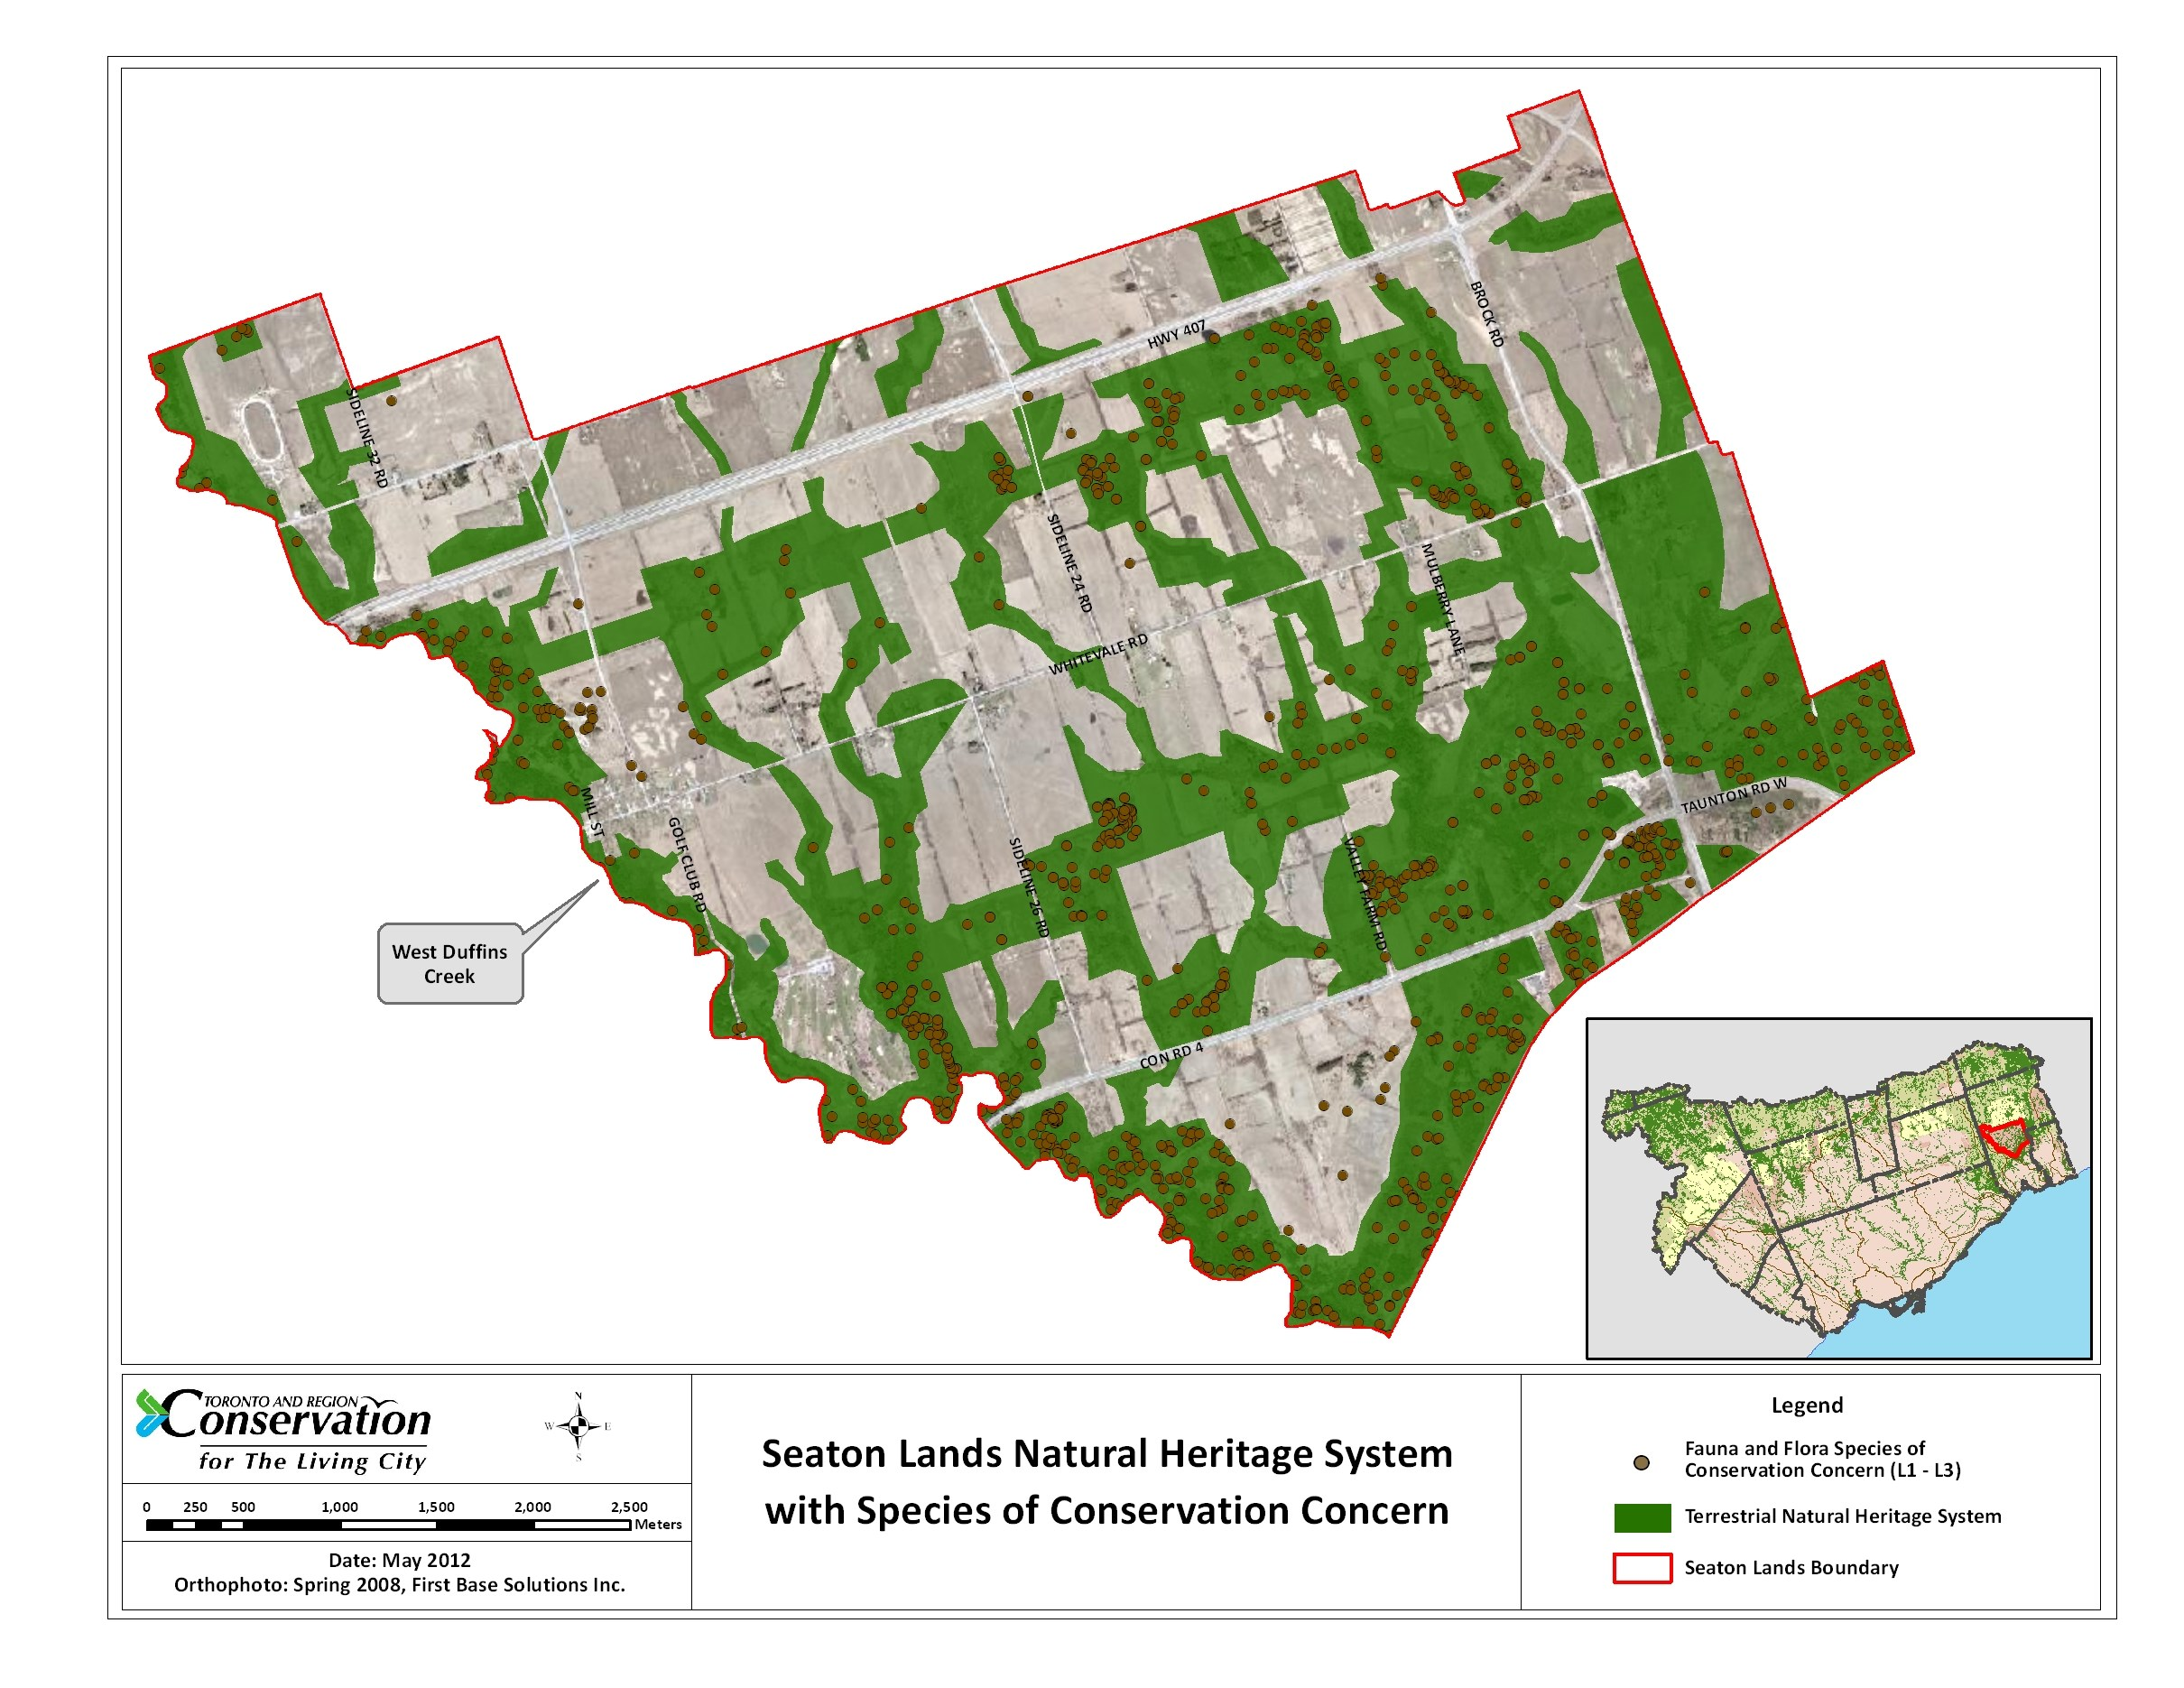 Map showing scoring of species in Seaton Lands Natural Heritage System